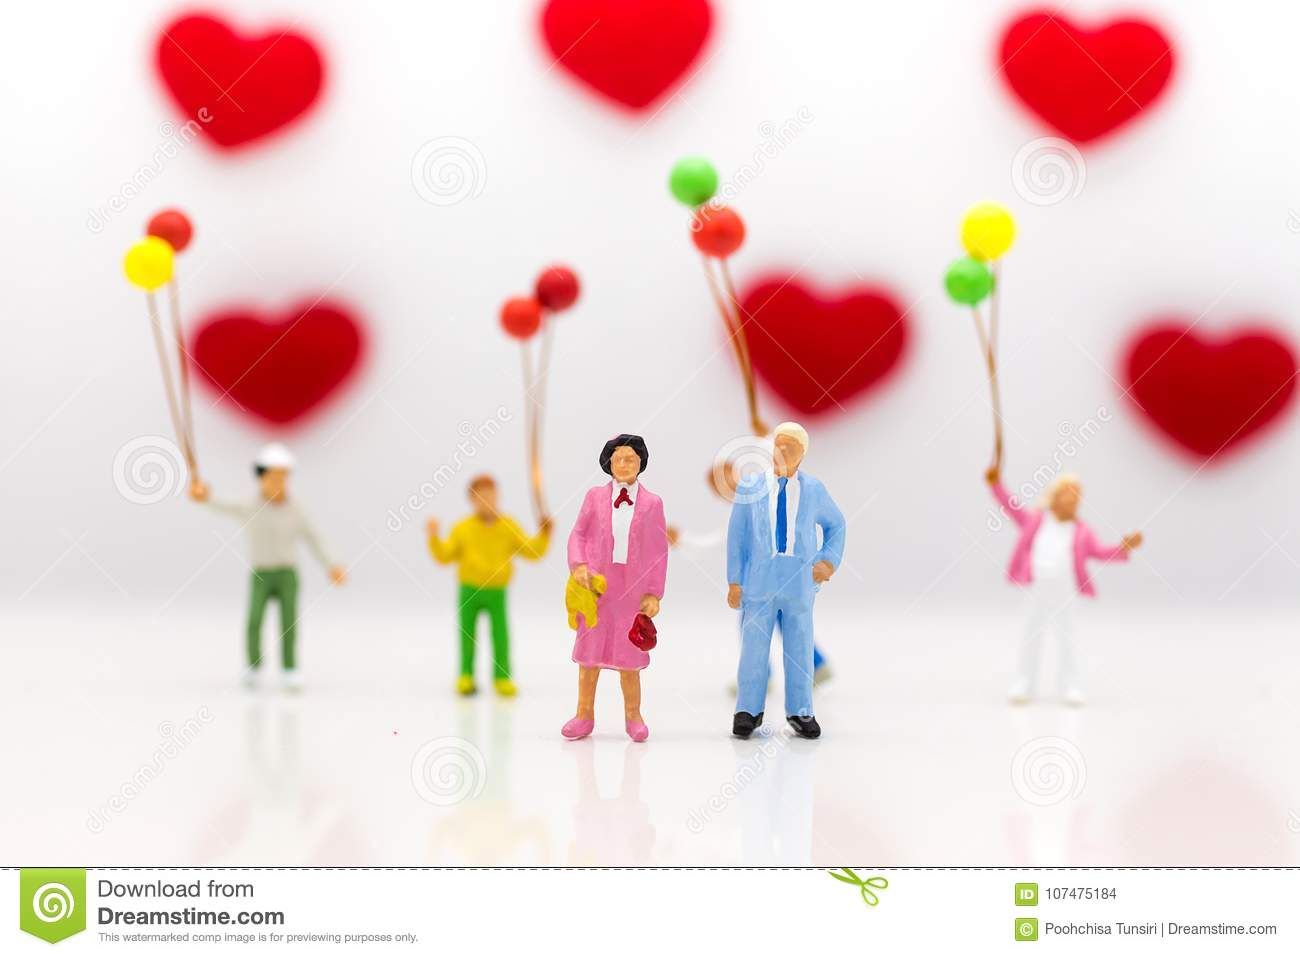 Parents love each other happily, with children playing balloons are behind, used as a wedding anniversary concept